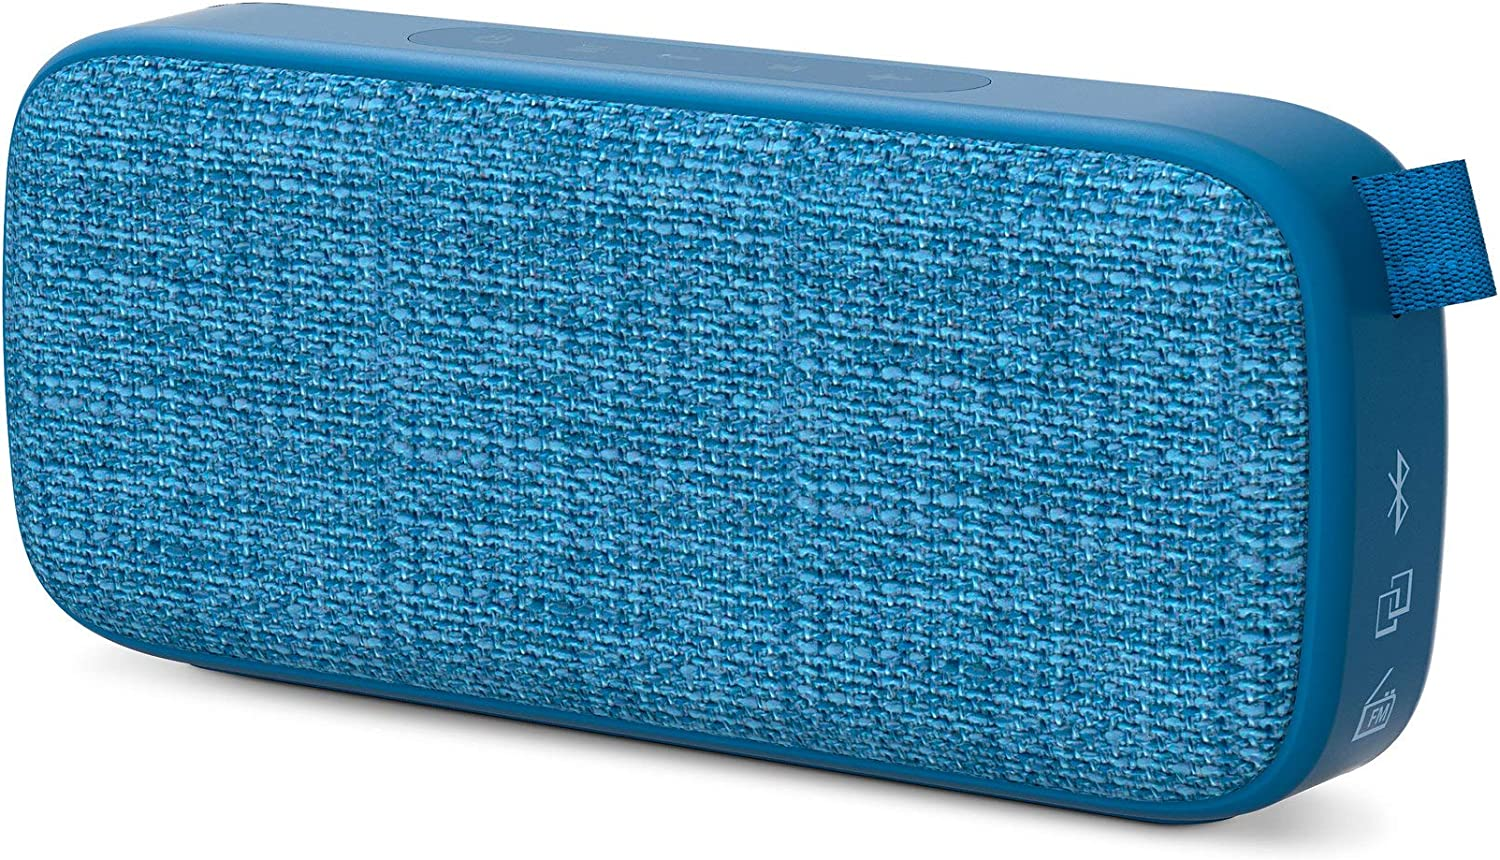 Energy Sistem Fabric Box 3+ Trend Blueberry Altavoz portátil con Bluetooth (TWS, Bluetooth v5.0, 6 W, USB&microSD MP3 Player, FM Radio)